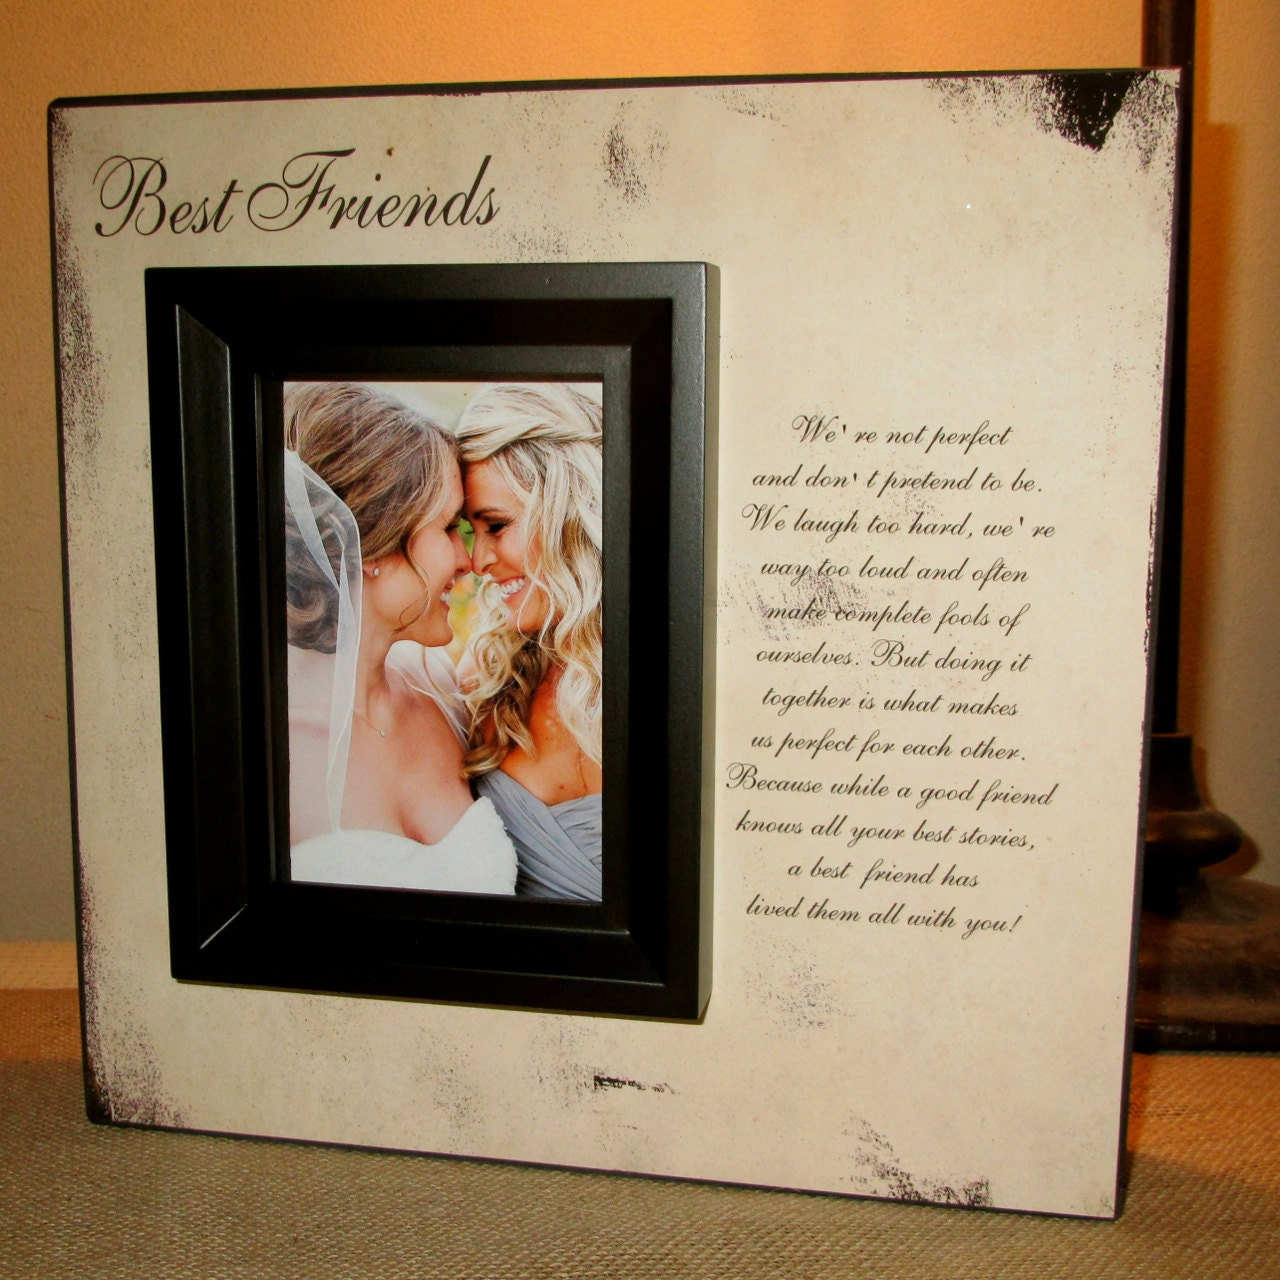 Friendship Quotes Maid Of Honor Speech: Best Friend Best Friends Picture Frame Poem By WordsofWisdomNH